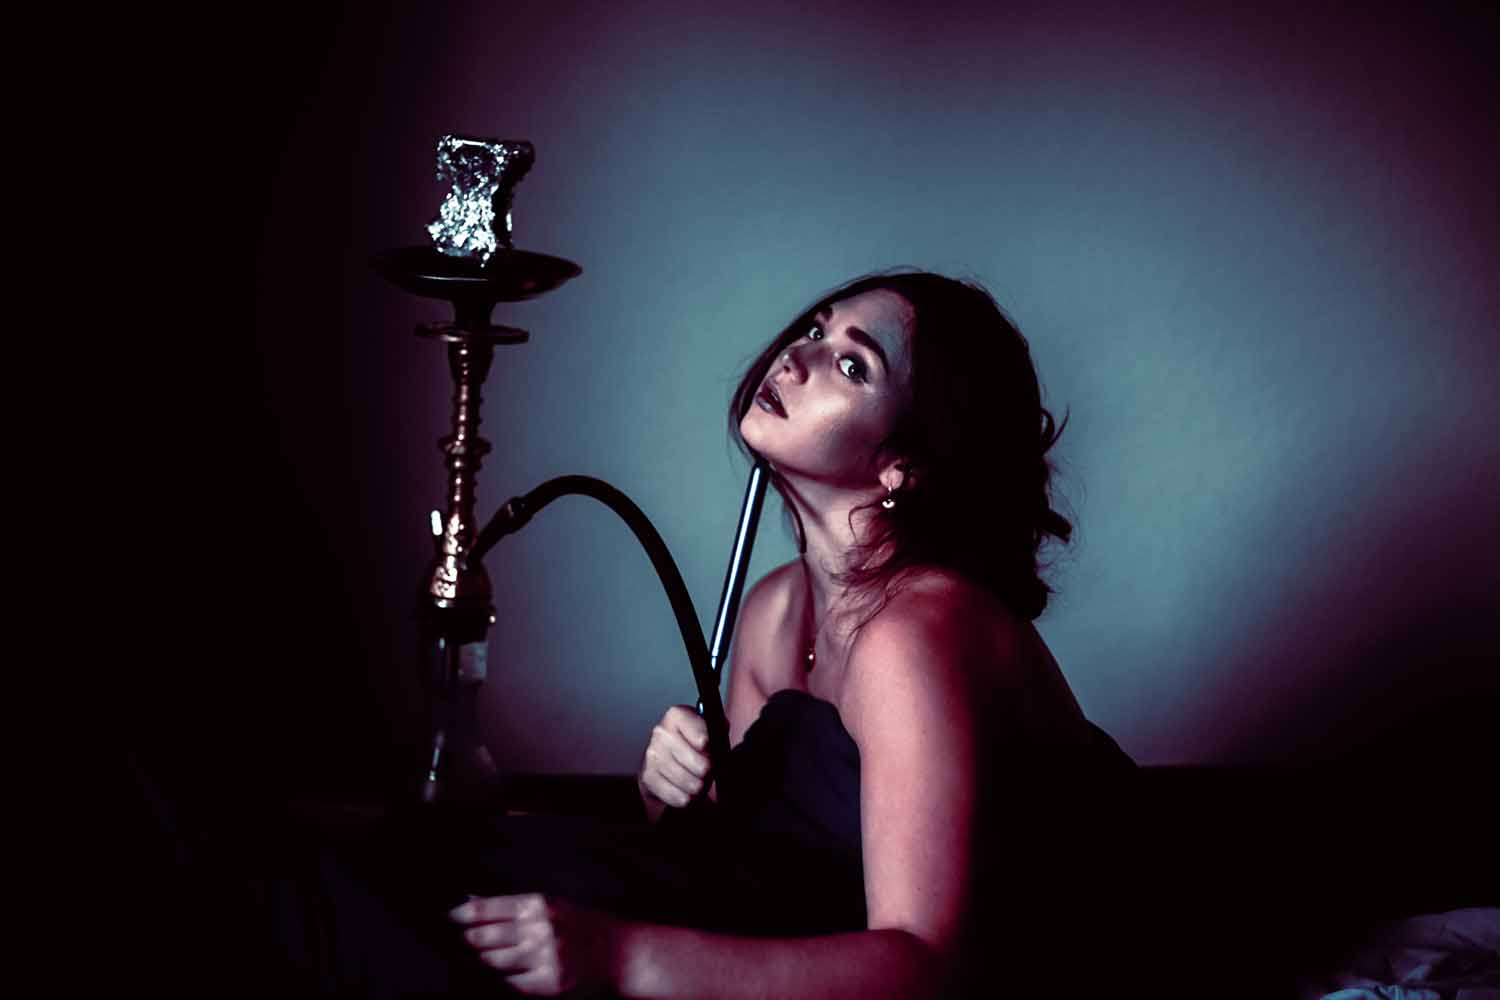 woman and hookah